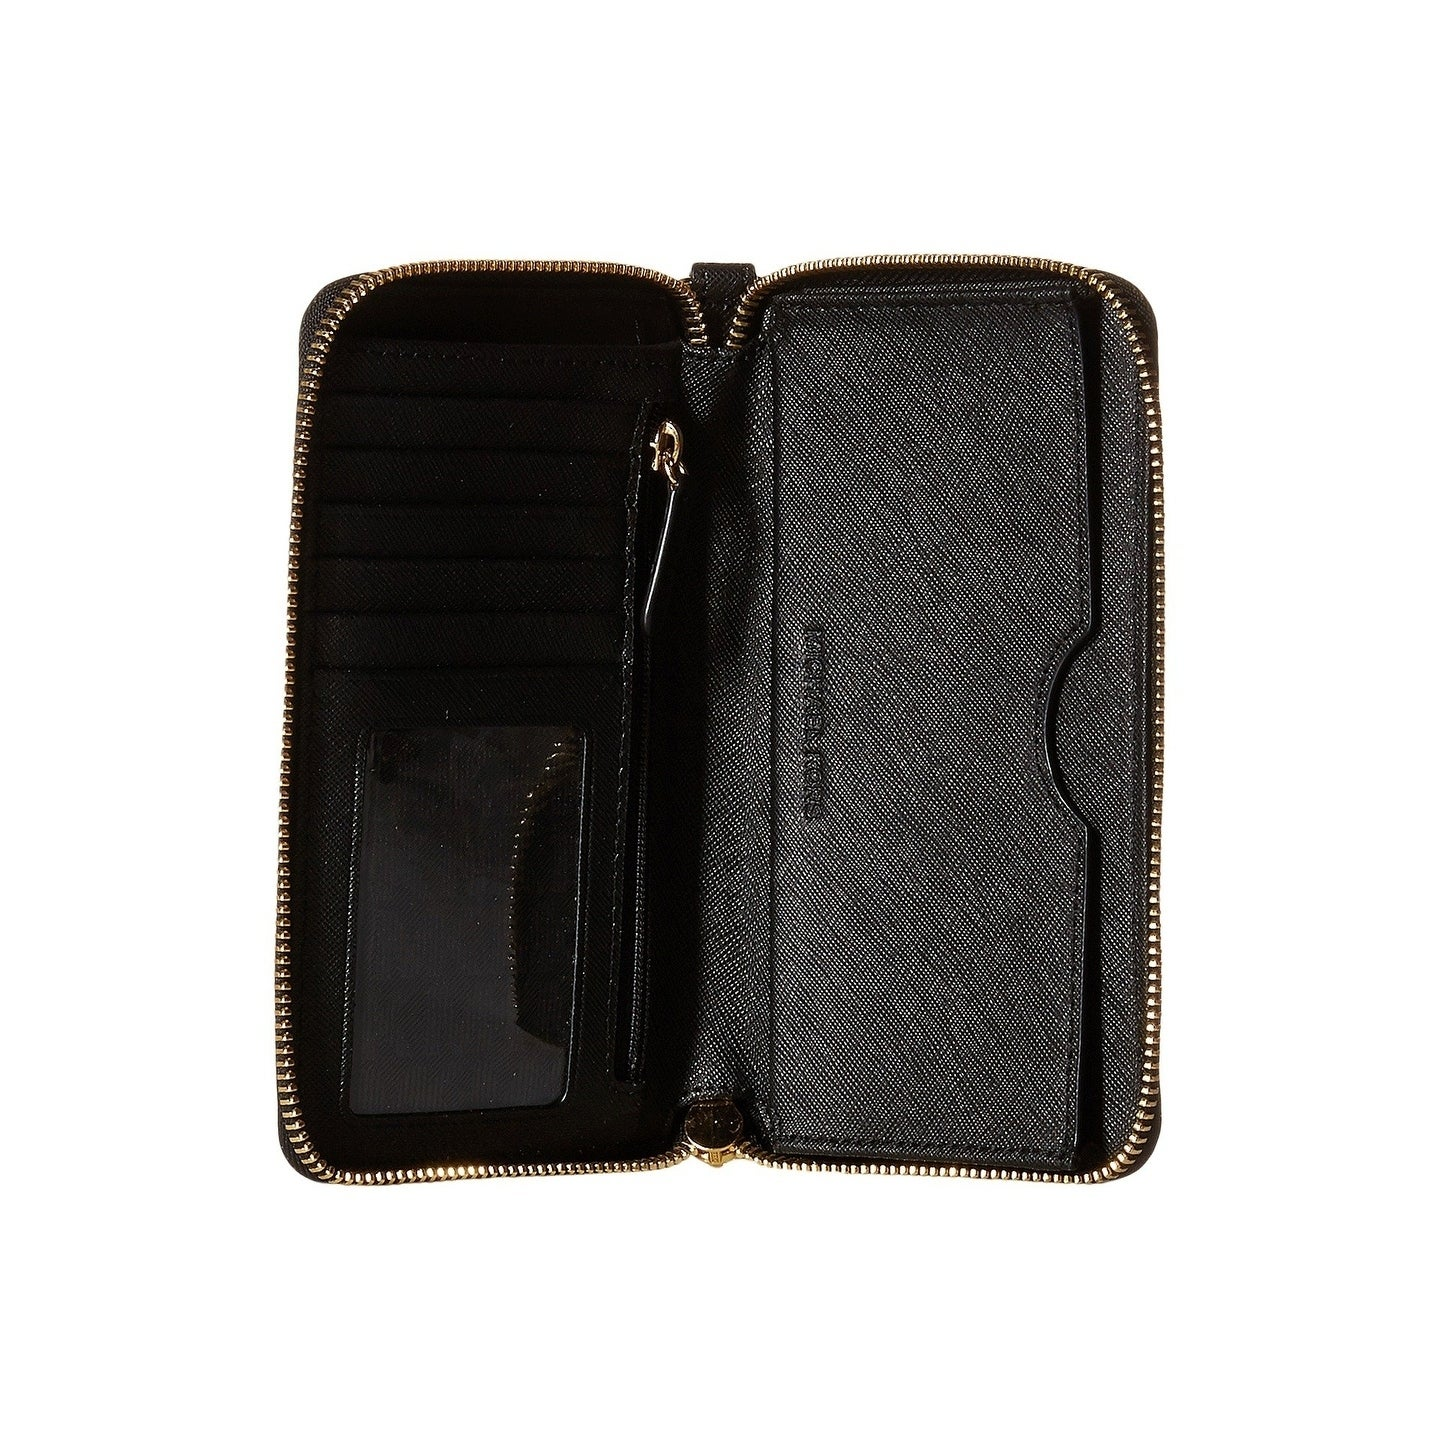 16bf46549032 Shop MICHAEL Michael Kors Black Large Flat Phone Wristlet - On Sale - Free  Shipping Today - Overstock - 22369373